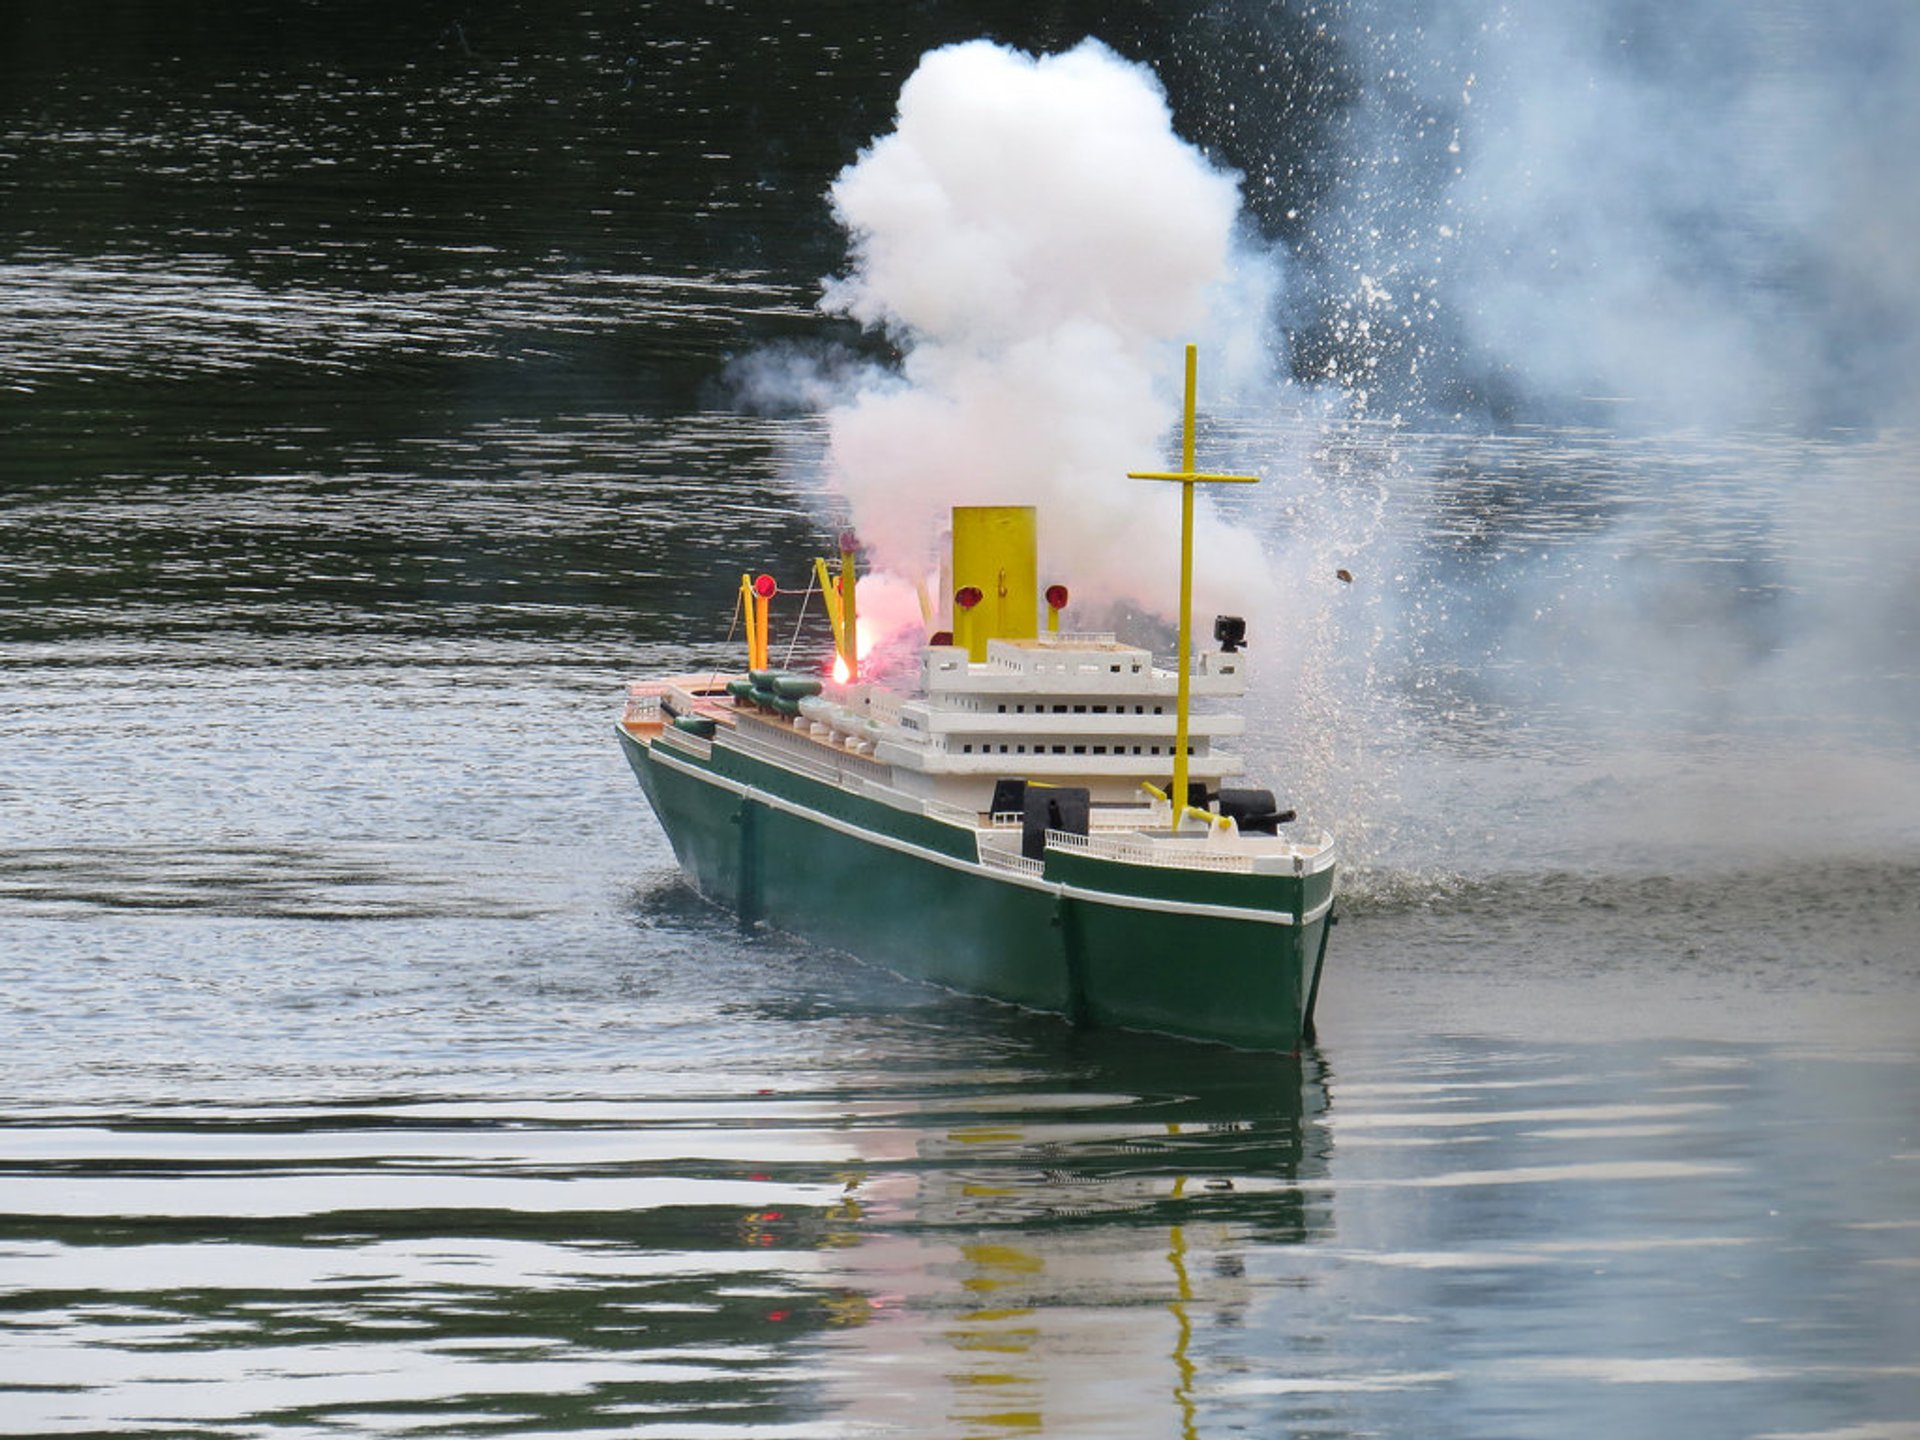 Peasholm Park Naval Battles in England 2019 - Best Time